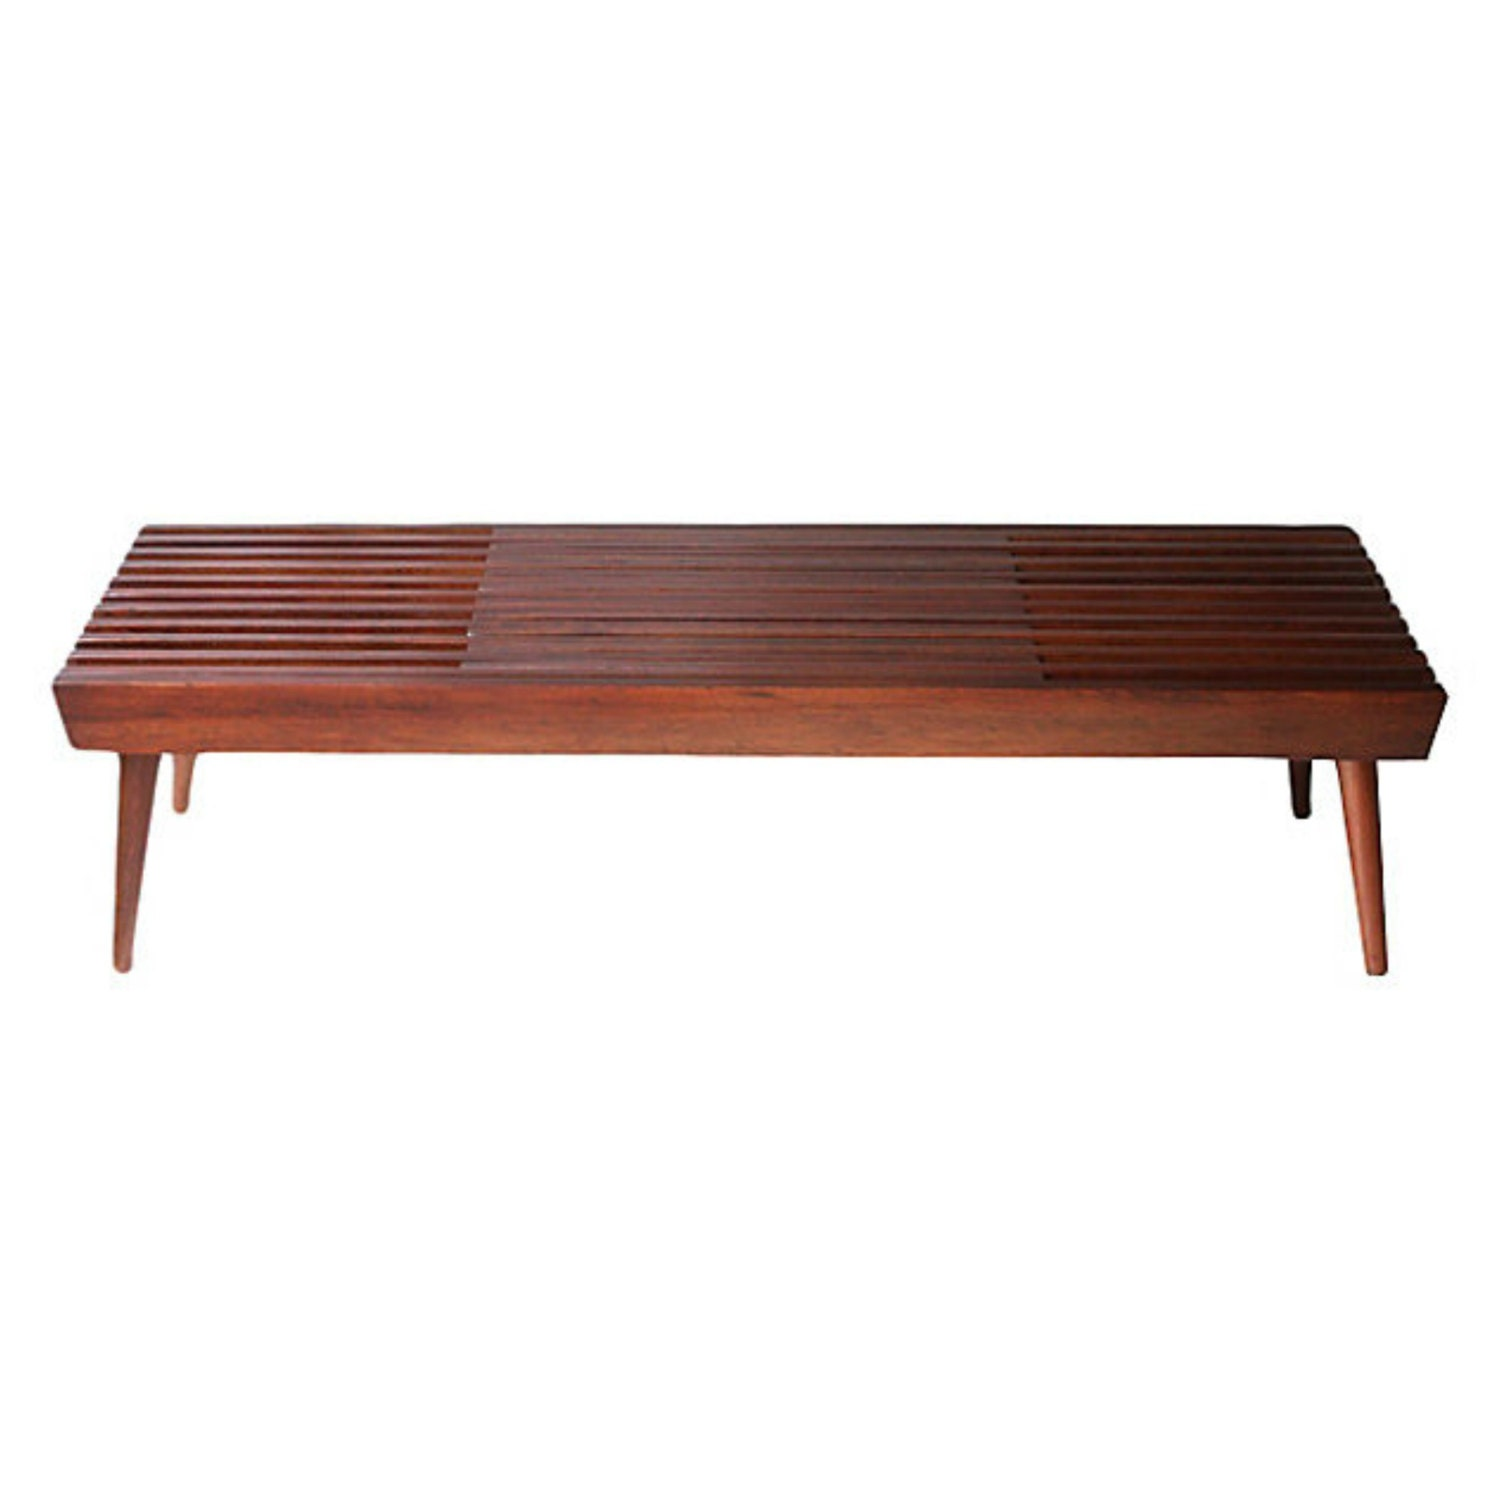 Slatted Coffee Table Walnut Expanding Slat Coffee Table Or Bench Mid Century Modern